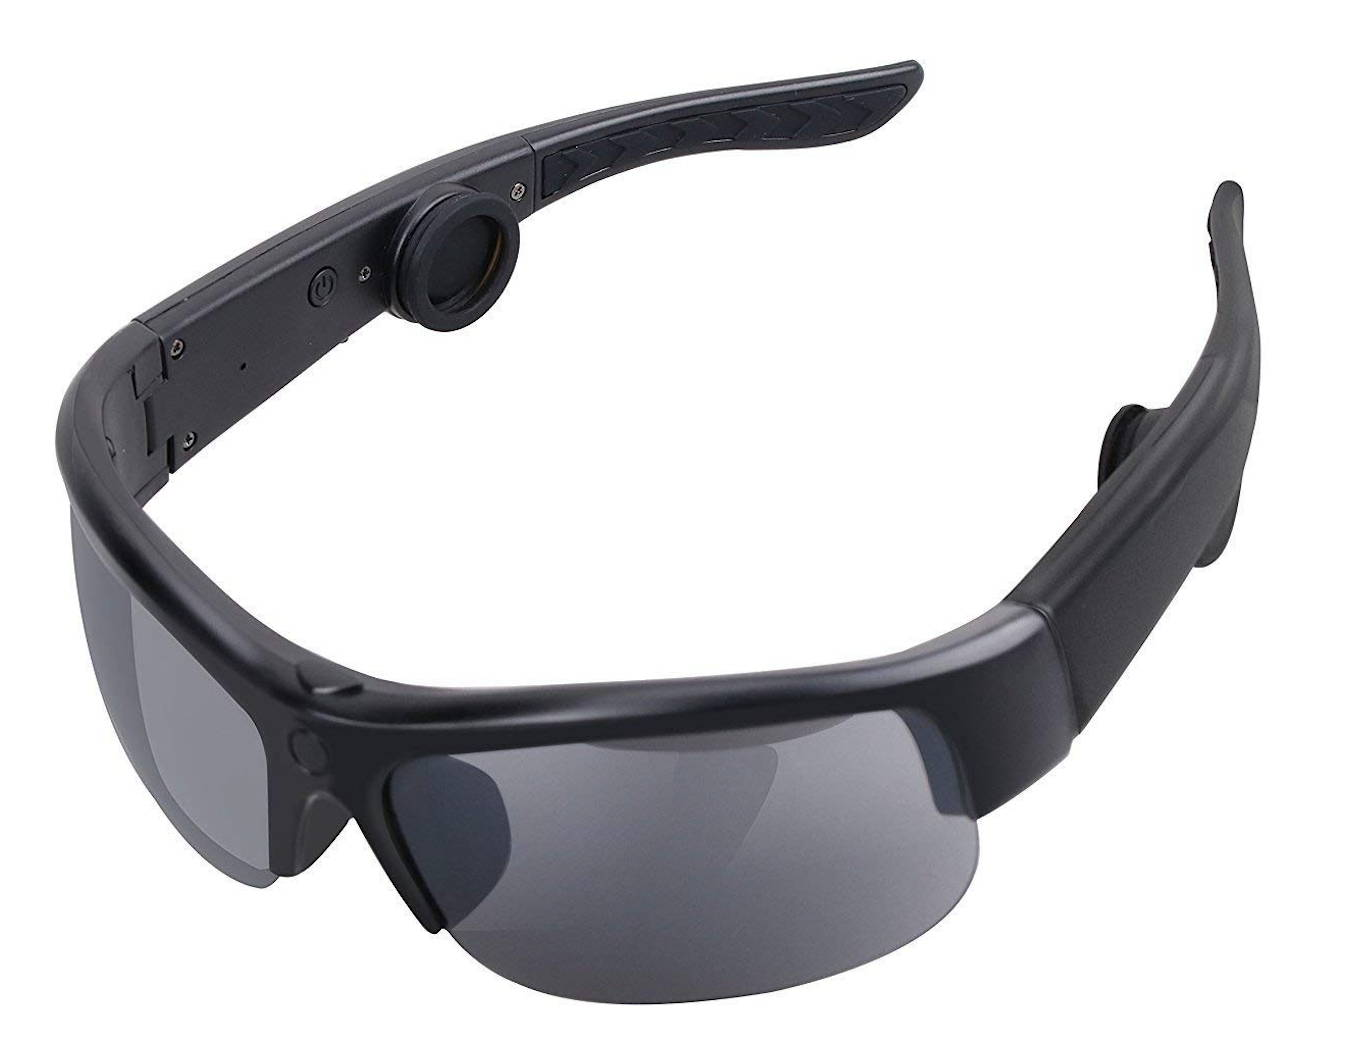 baab3f3e07aaba Yet this is the only decent bone conduction glasses with a sports style  (apart from the to-be-released OptiShokz Revvez), suitable for cycling, ...